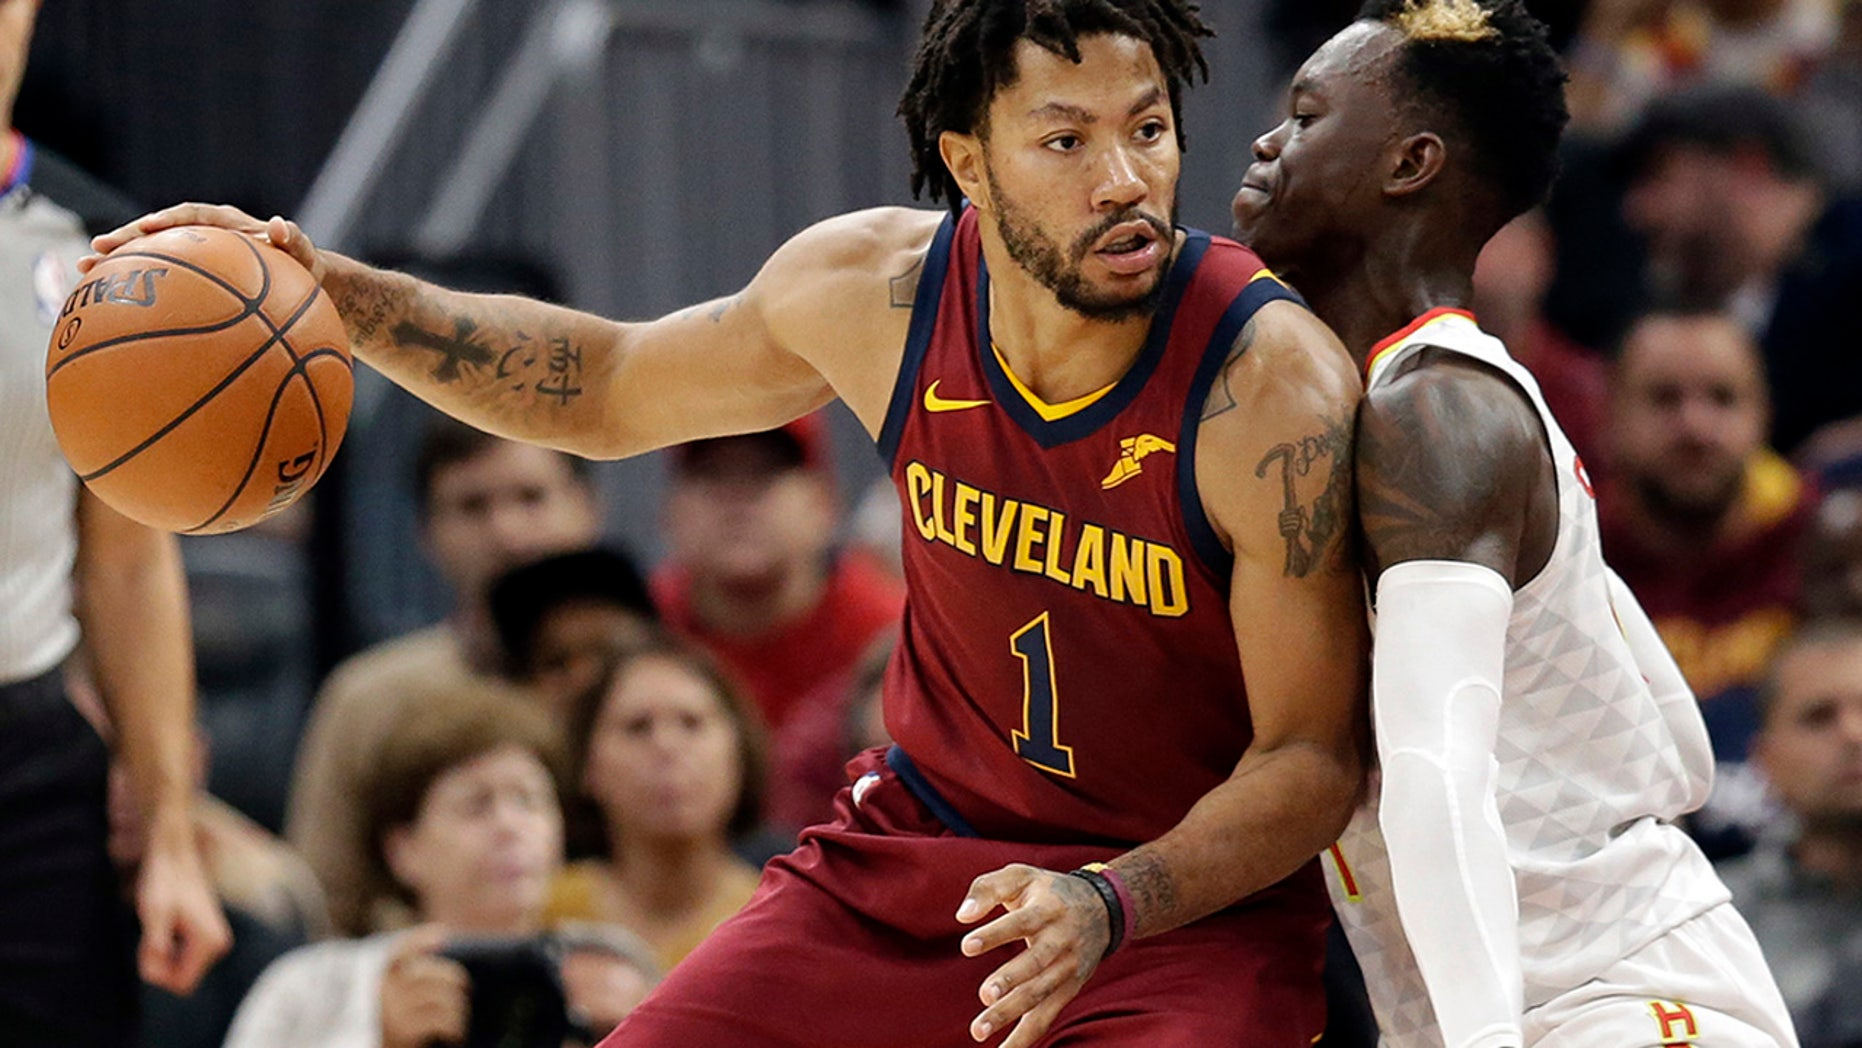 Derrick Rose was named the NBA's Most Valuable Player following the 2010-11 season. The next year, he suffered a career-alerting knee injury.